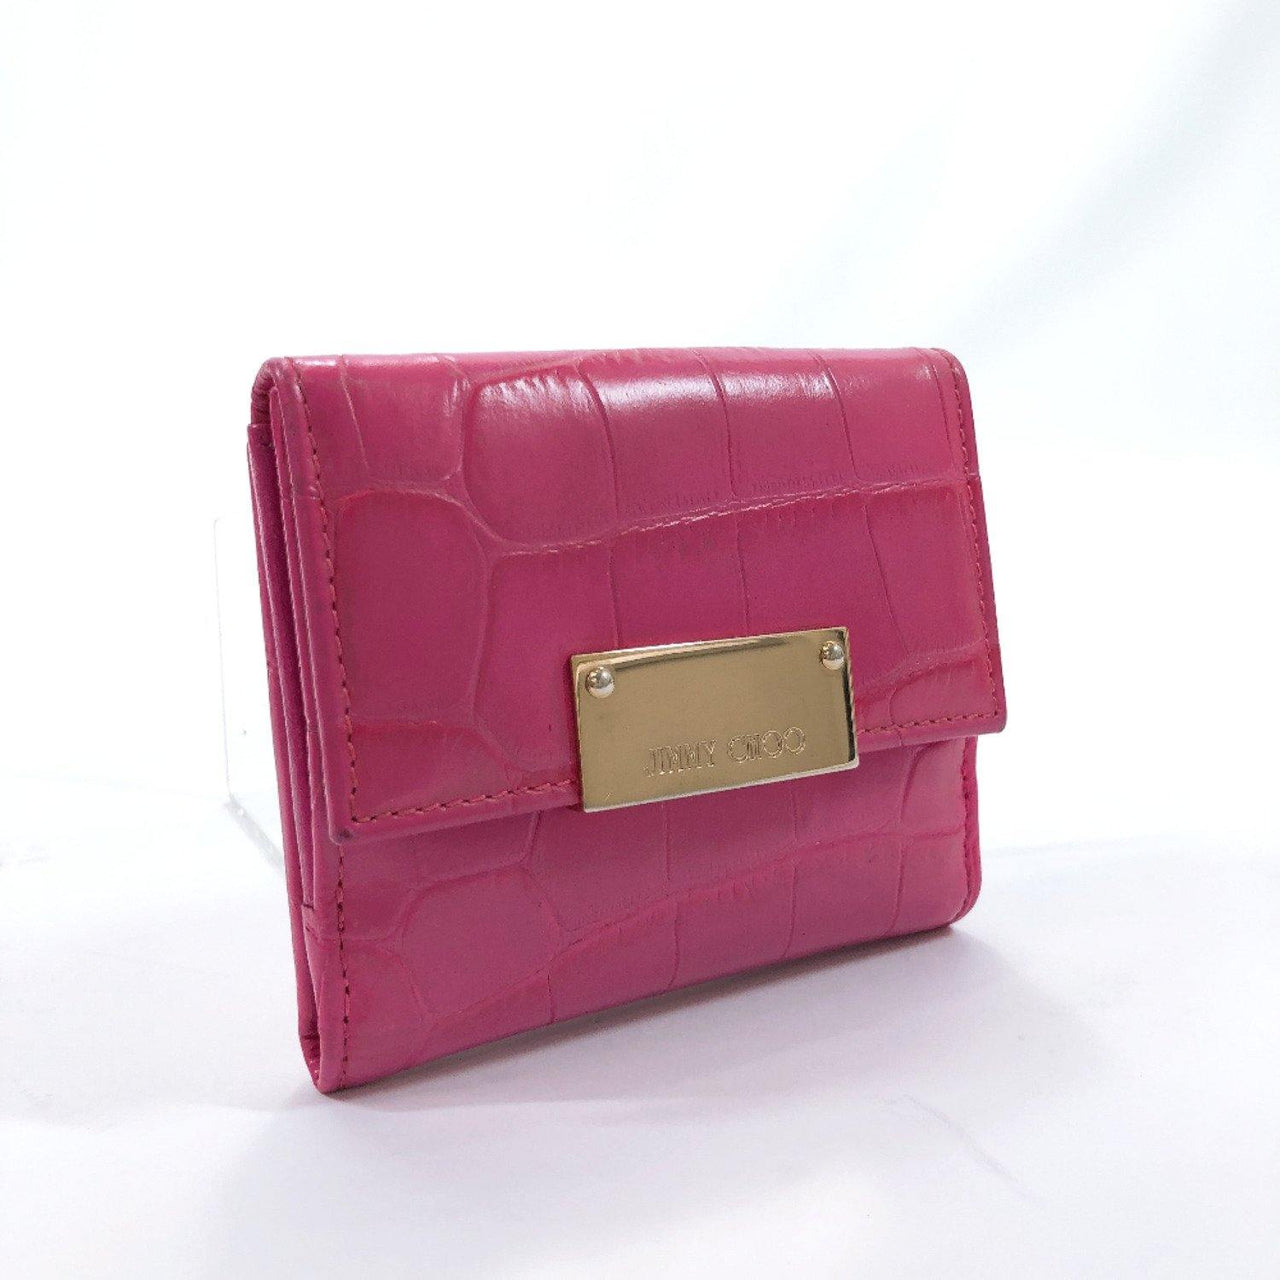 JIMMY CHOO Tri-fold wallet Embossed leather leather pink Gold Hardware Women Used - JP-BRANDS.com